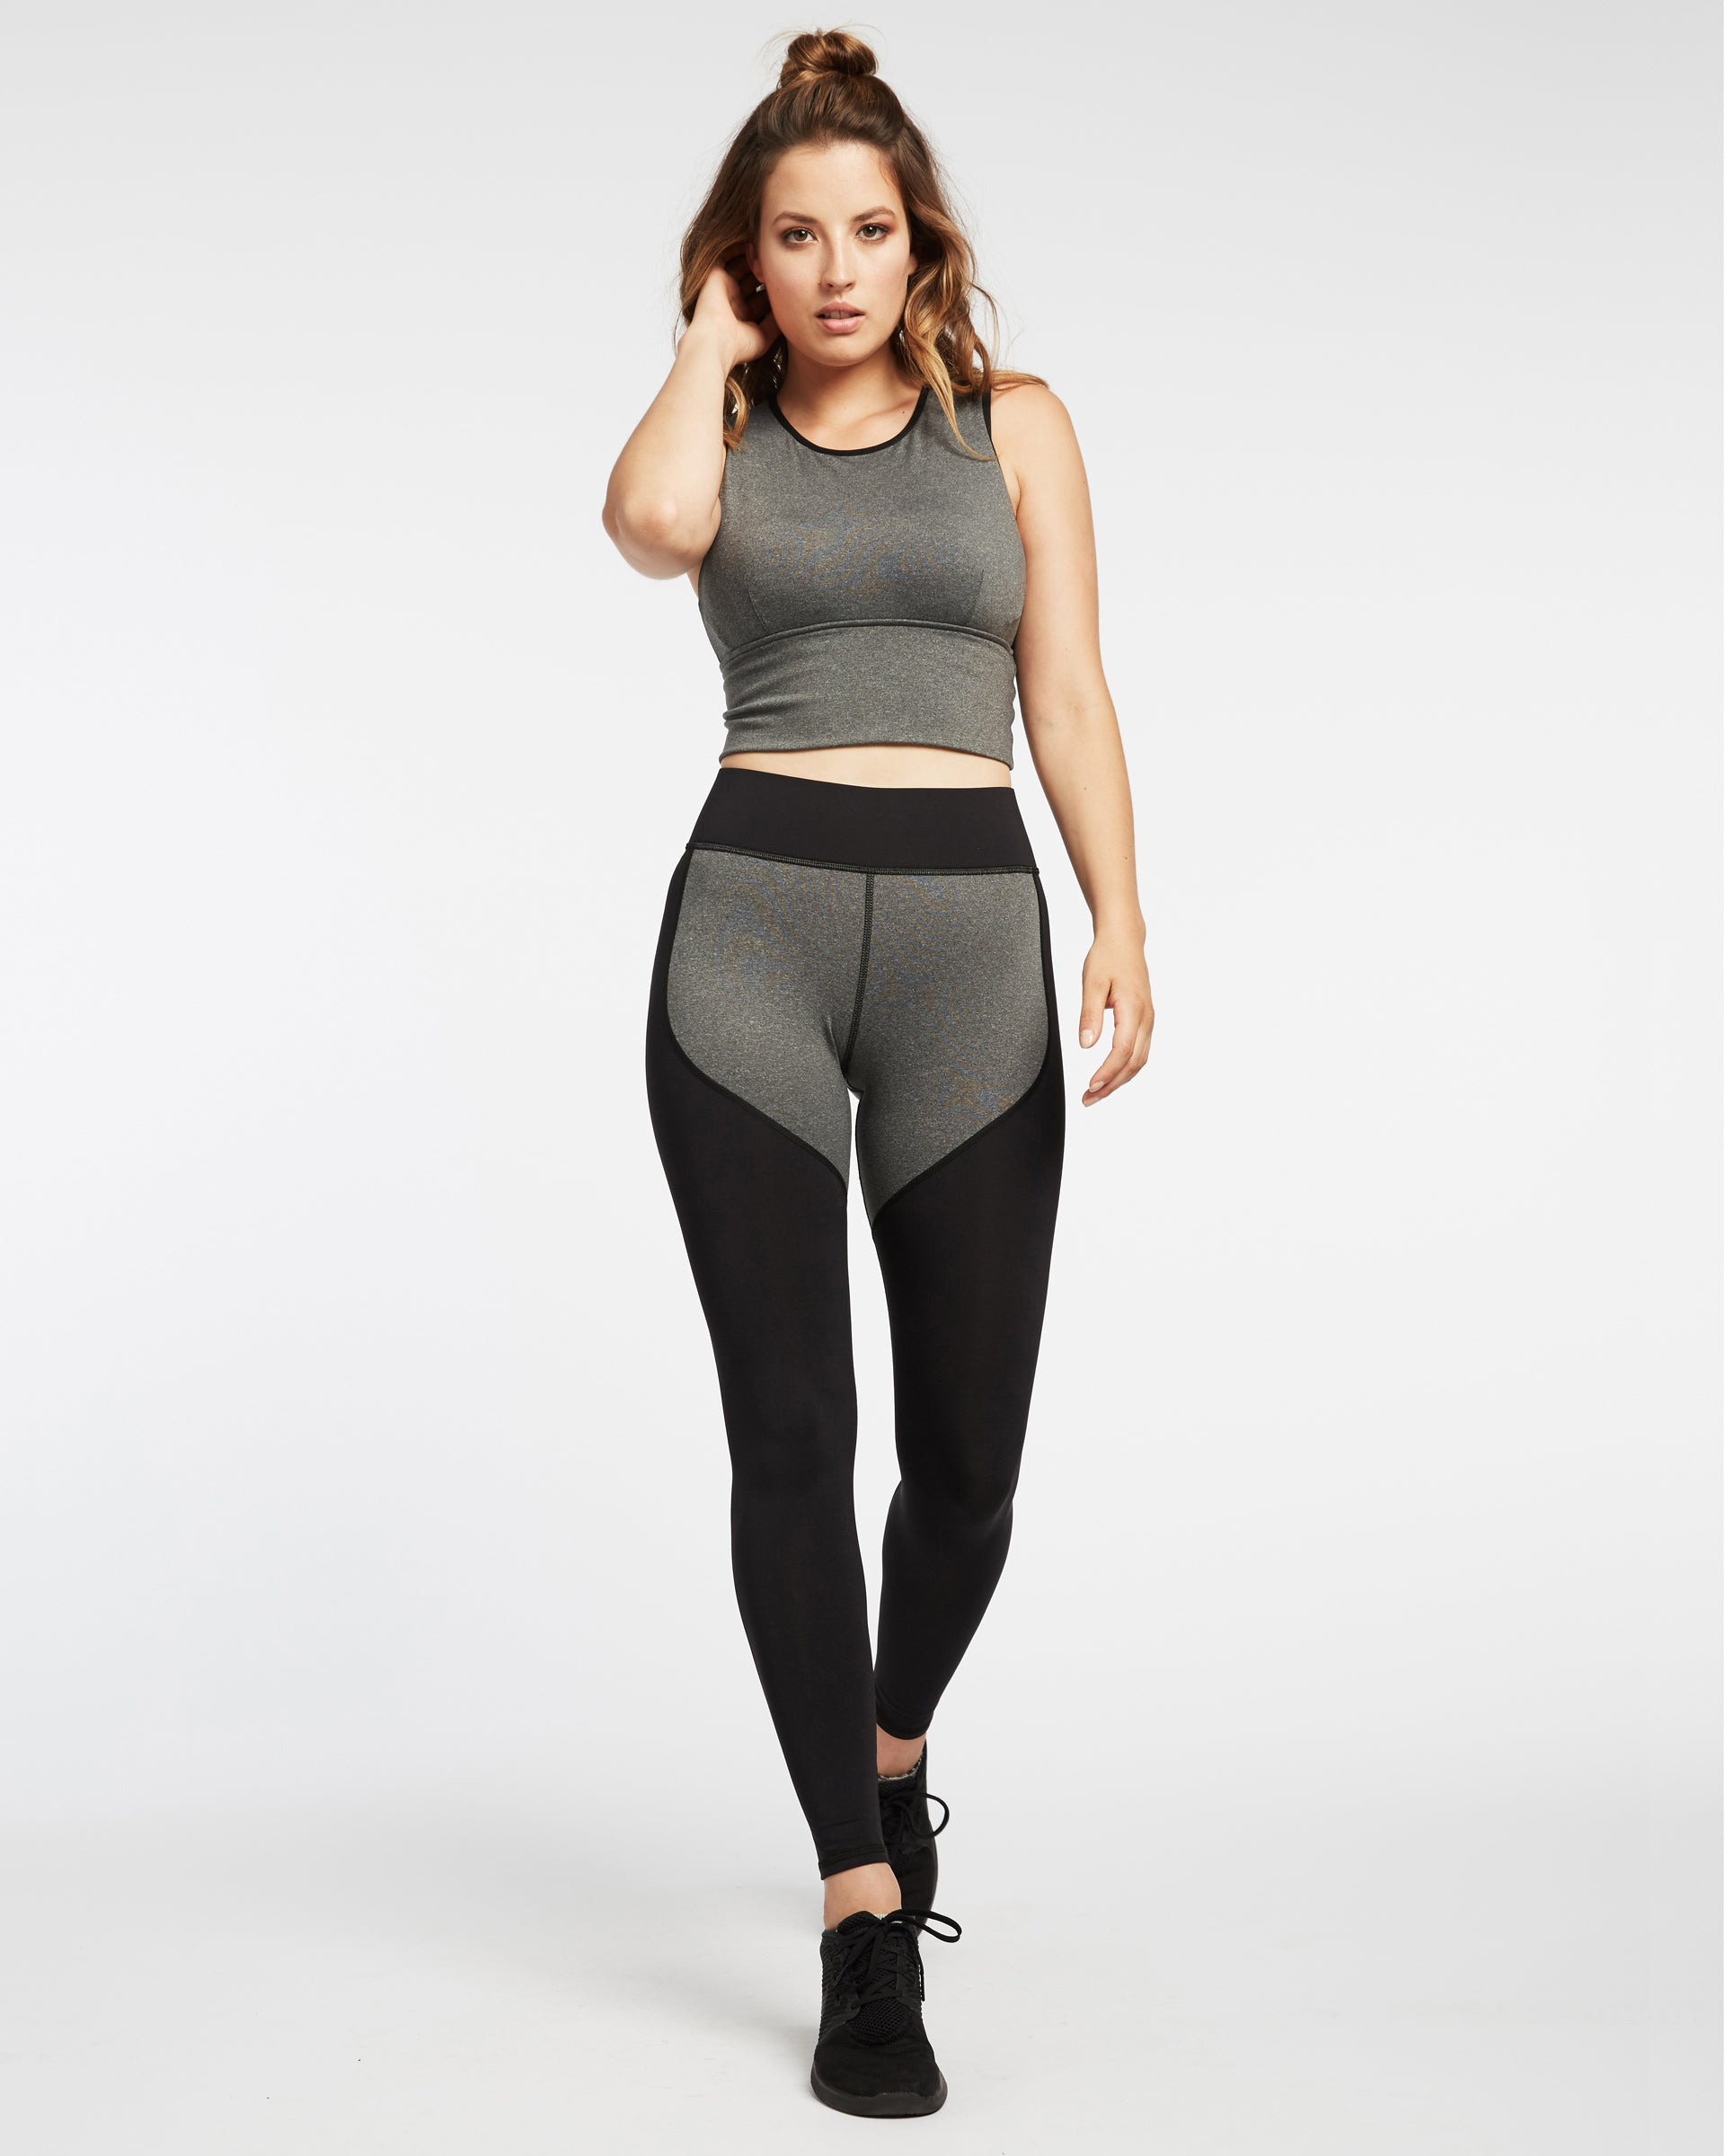 Ignite Crop Top - Heather Grey